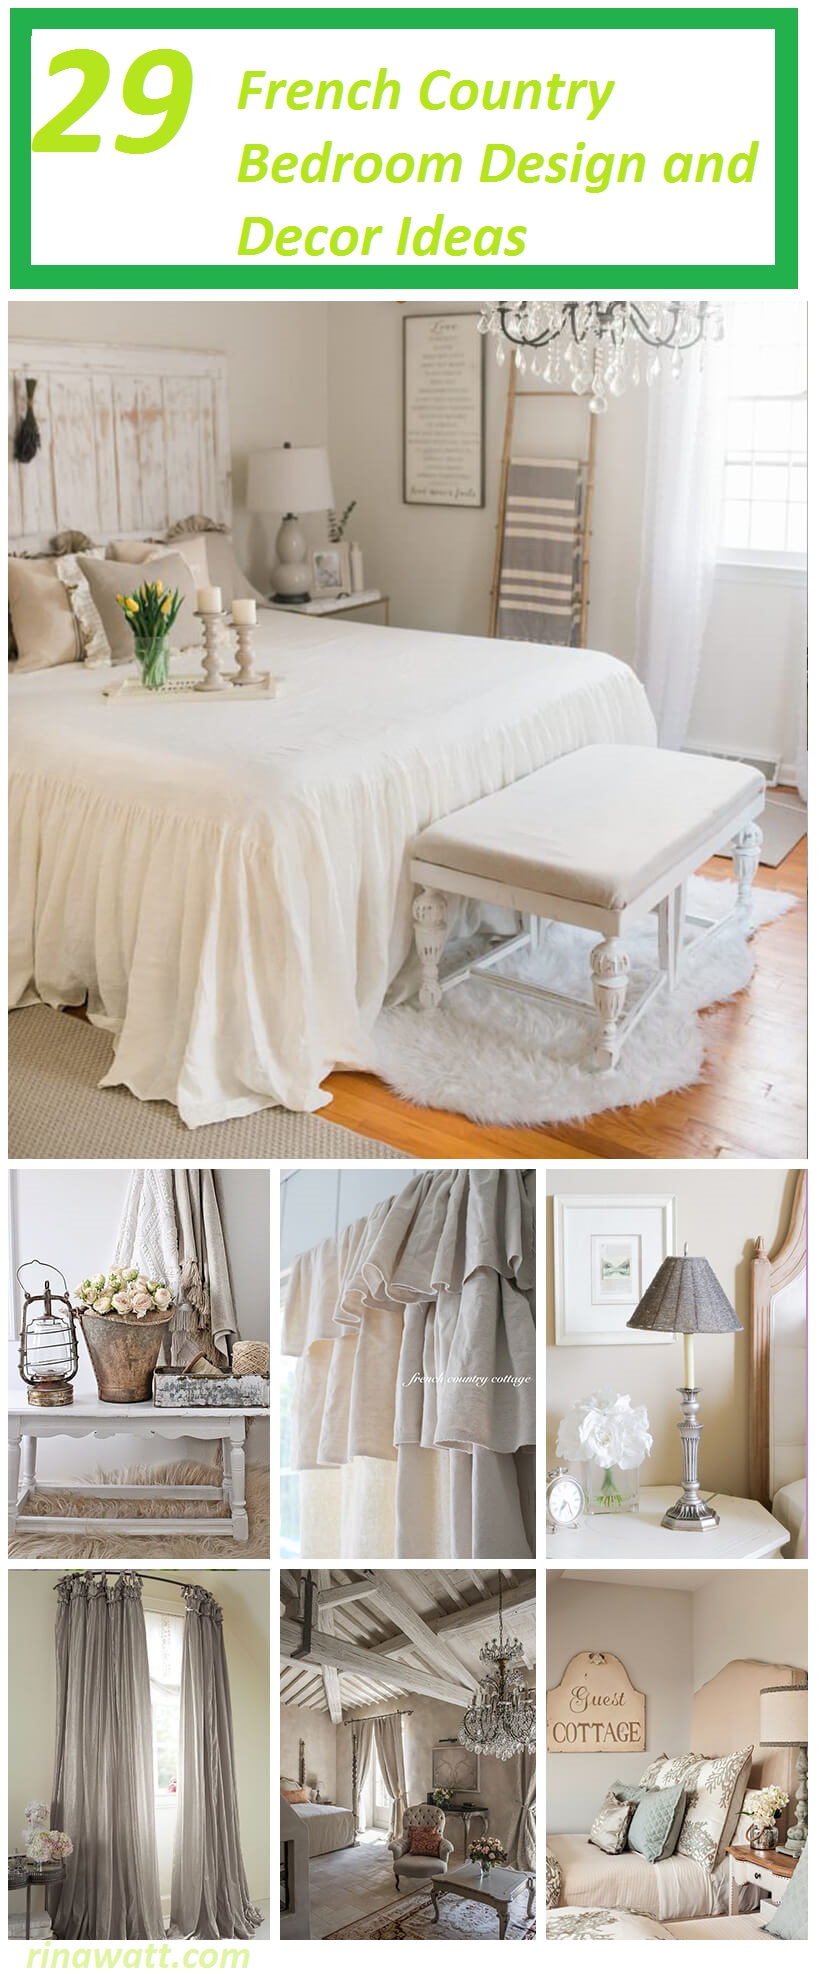 29 French Country Bedroom Design and Decor Ideas for a ...